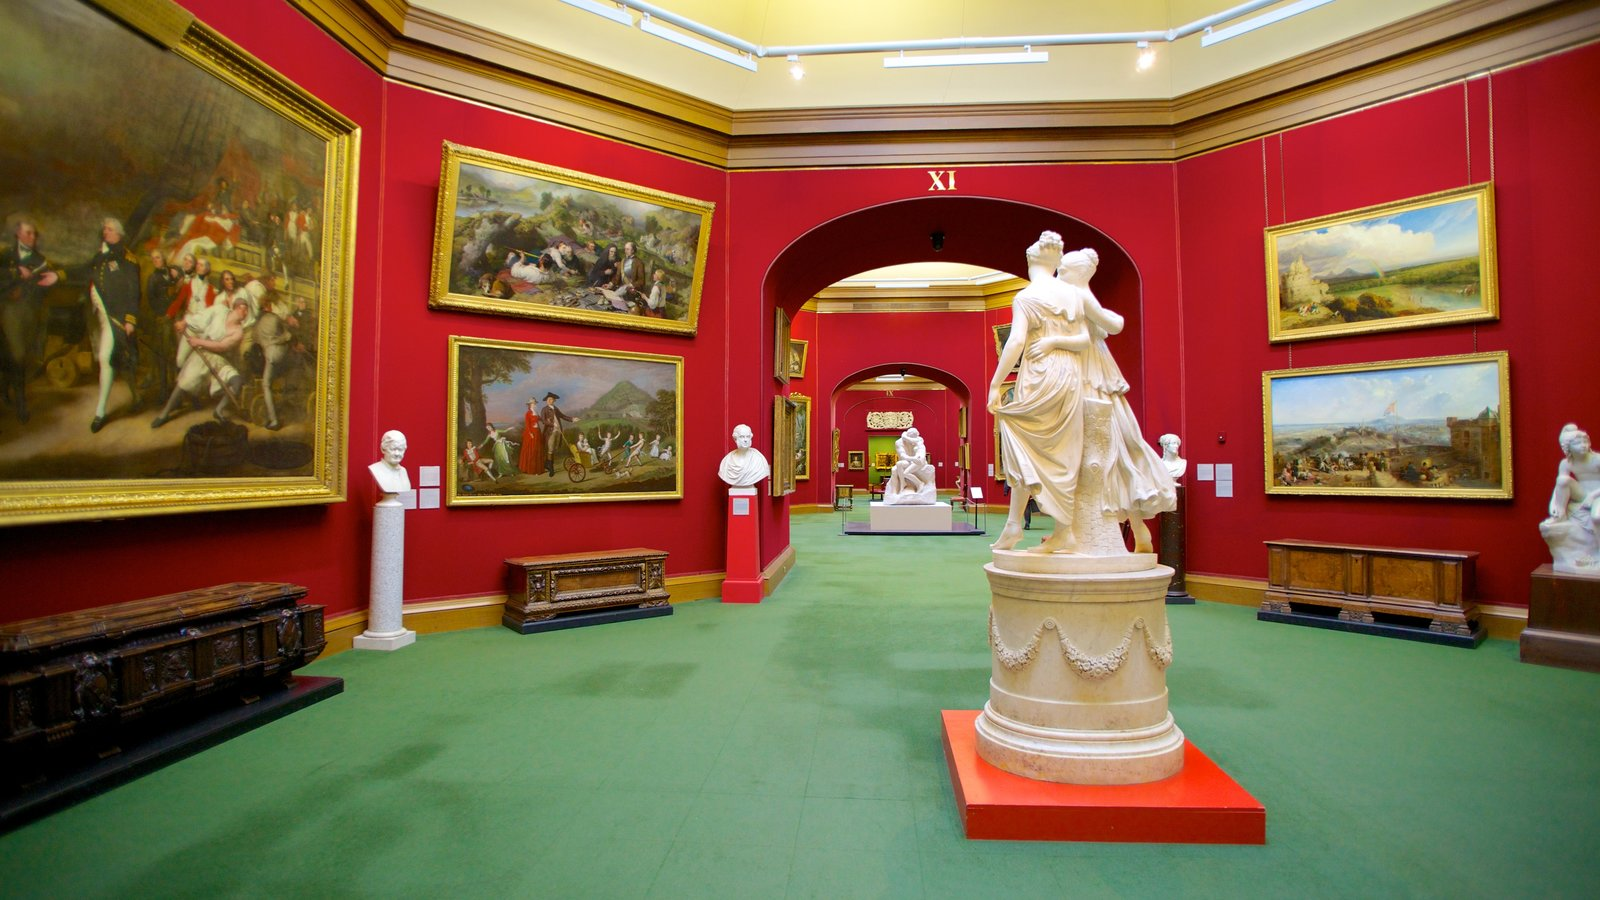 Scottish National Gallery showing interior views and a statue or sculpture